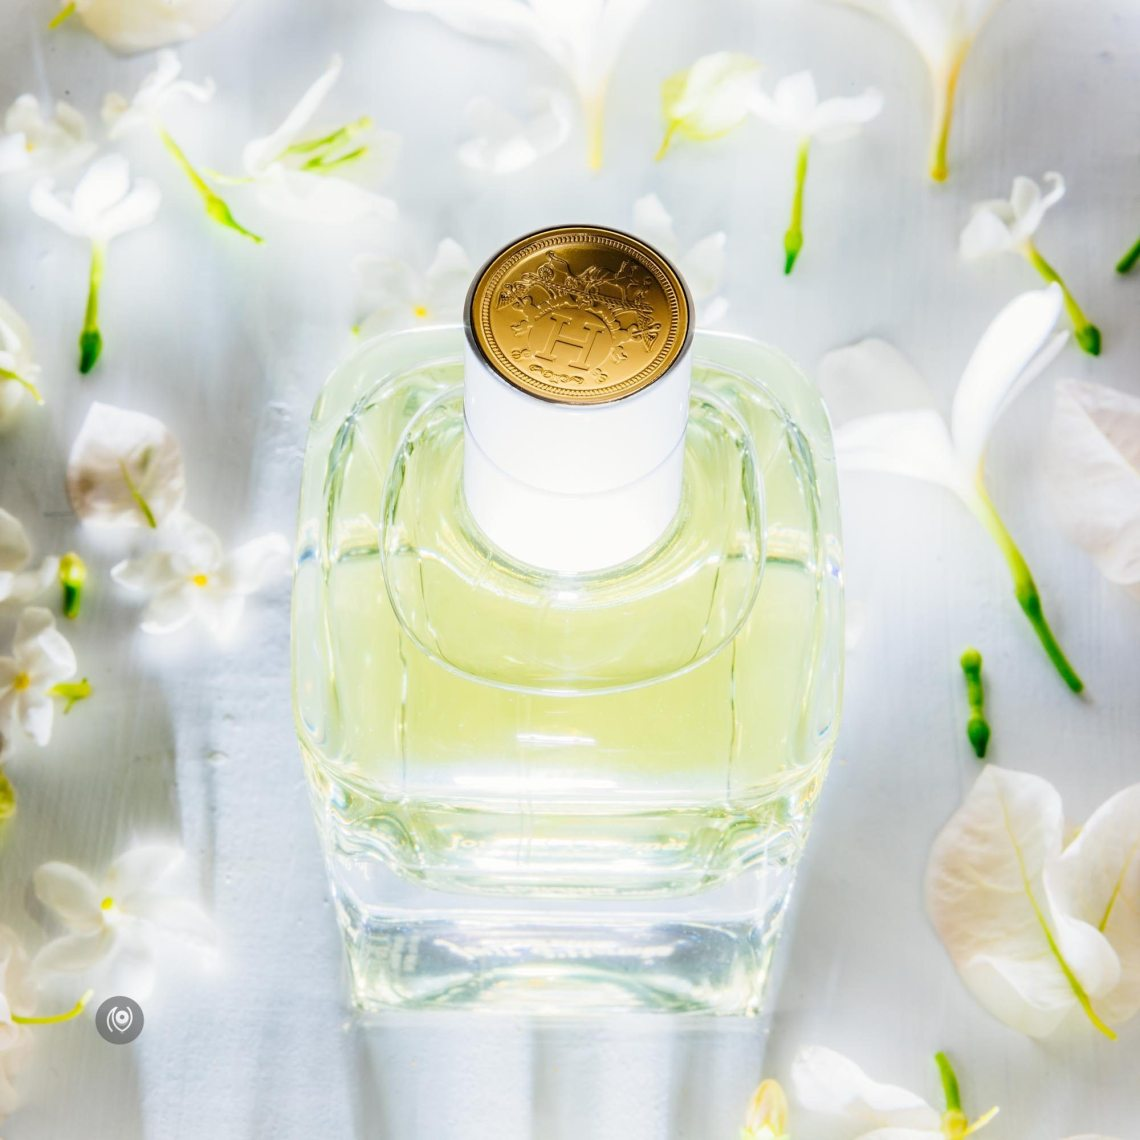 FragranceOfTheMonth-Naina.co-Jour-Hermes-Gardenia-EyesForLuxury-11